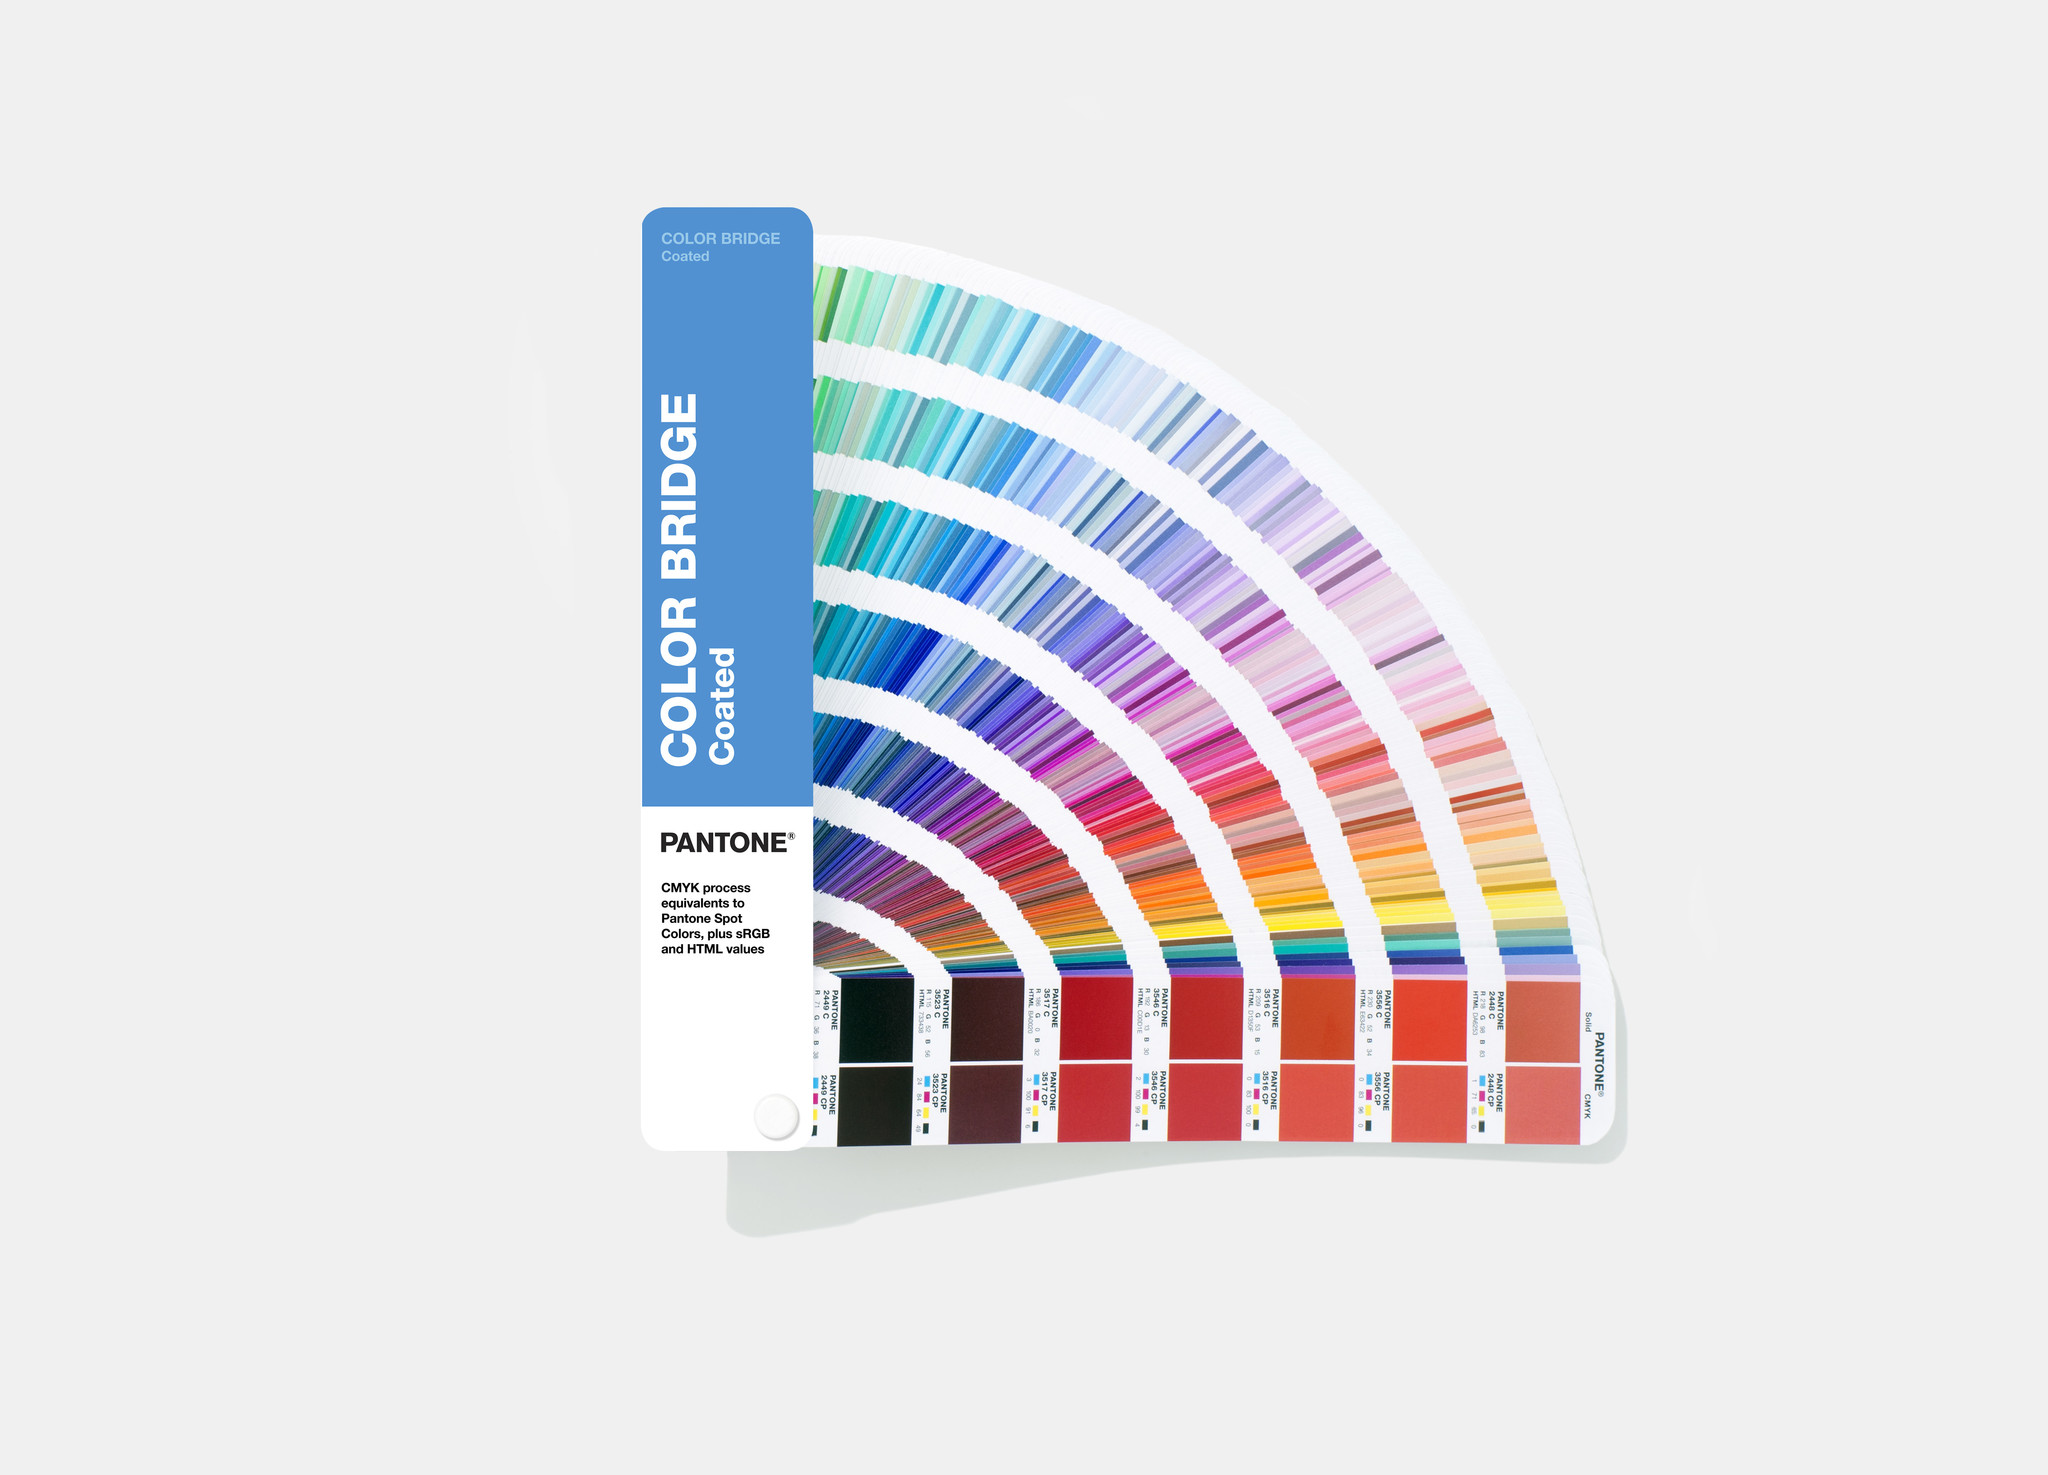 PANTONE PANTONE Color Bridge (Coated) - NEW 2019 Guide